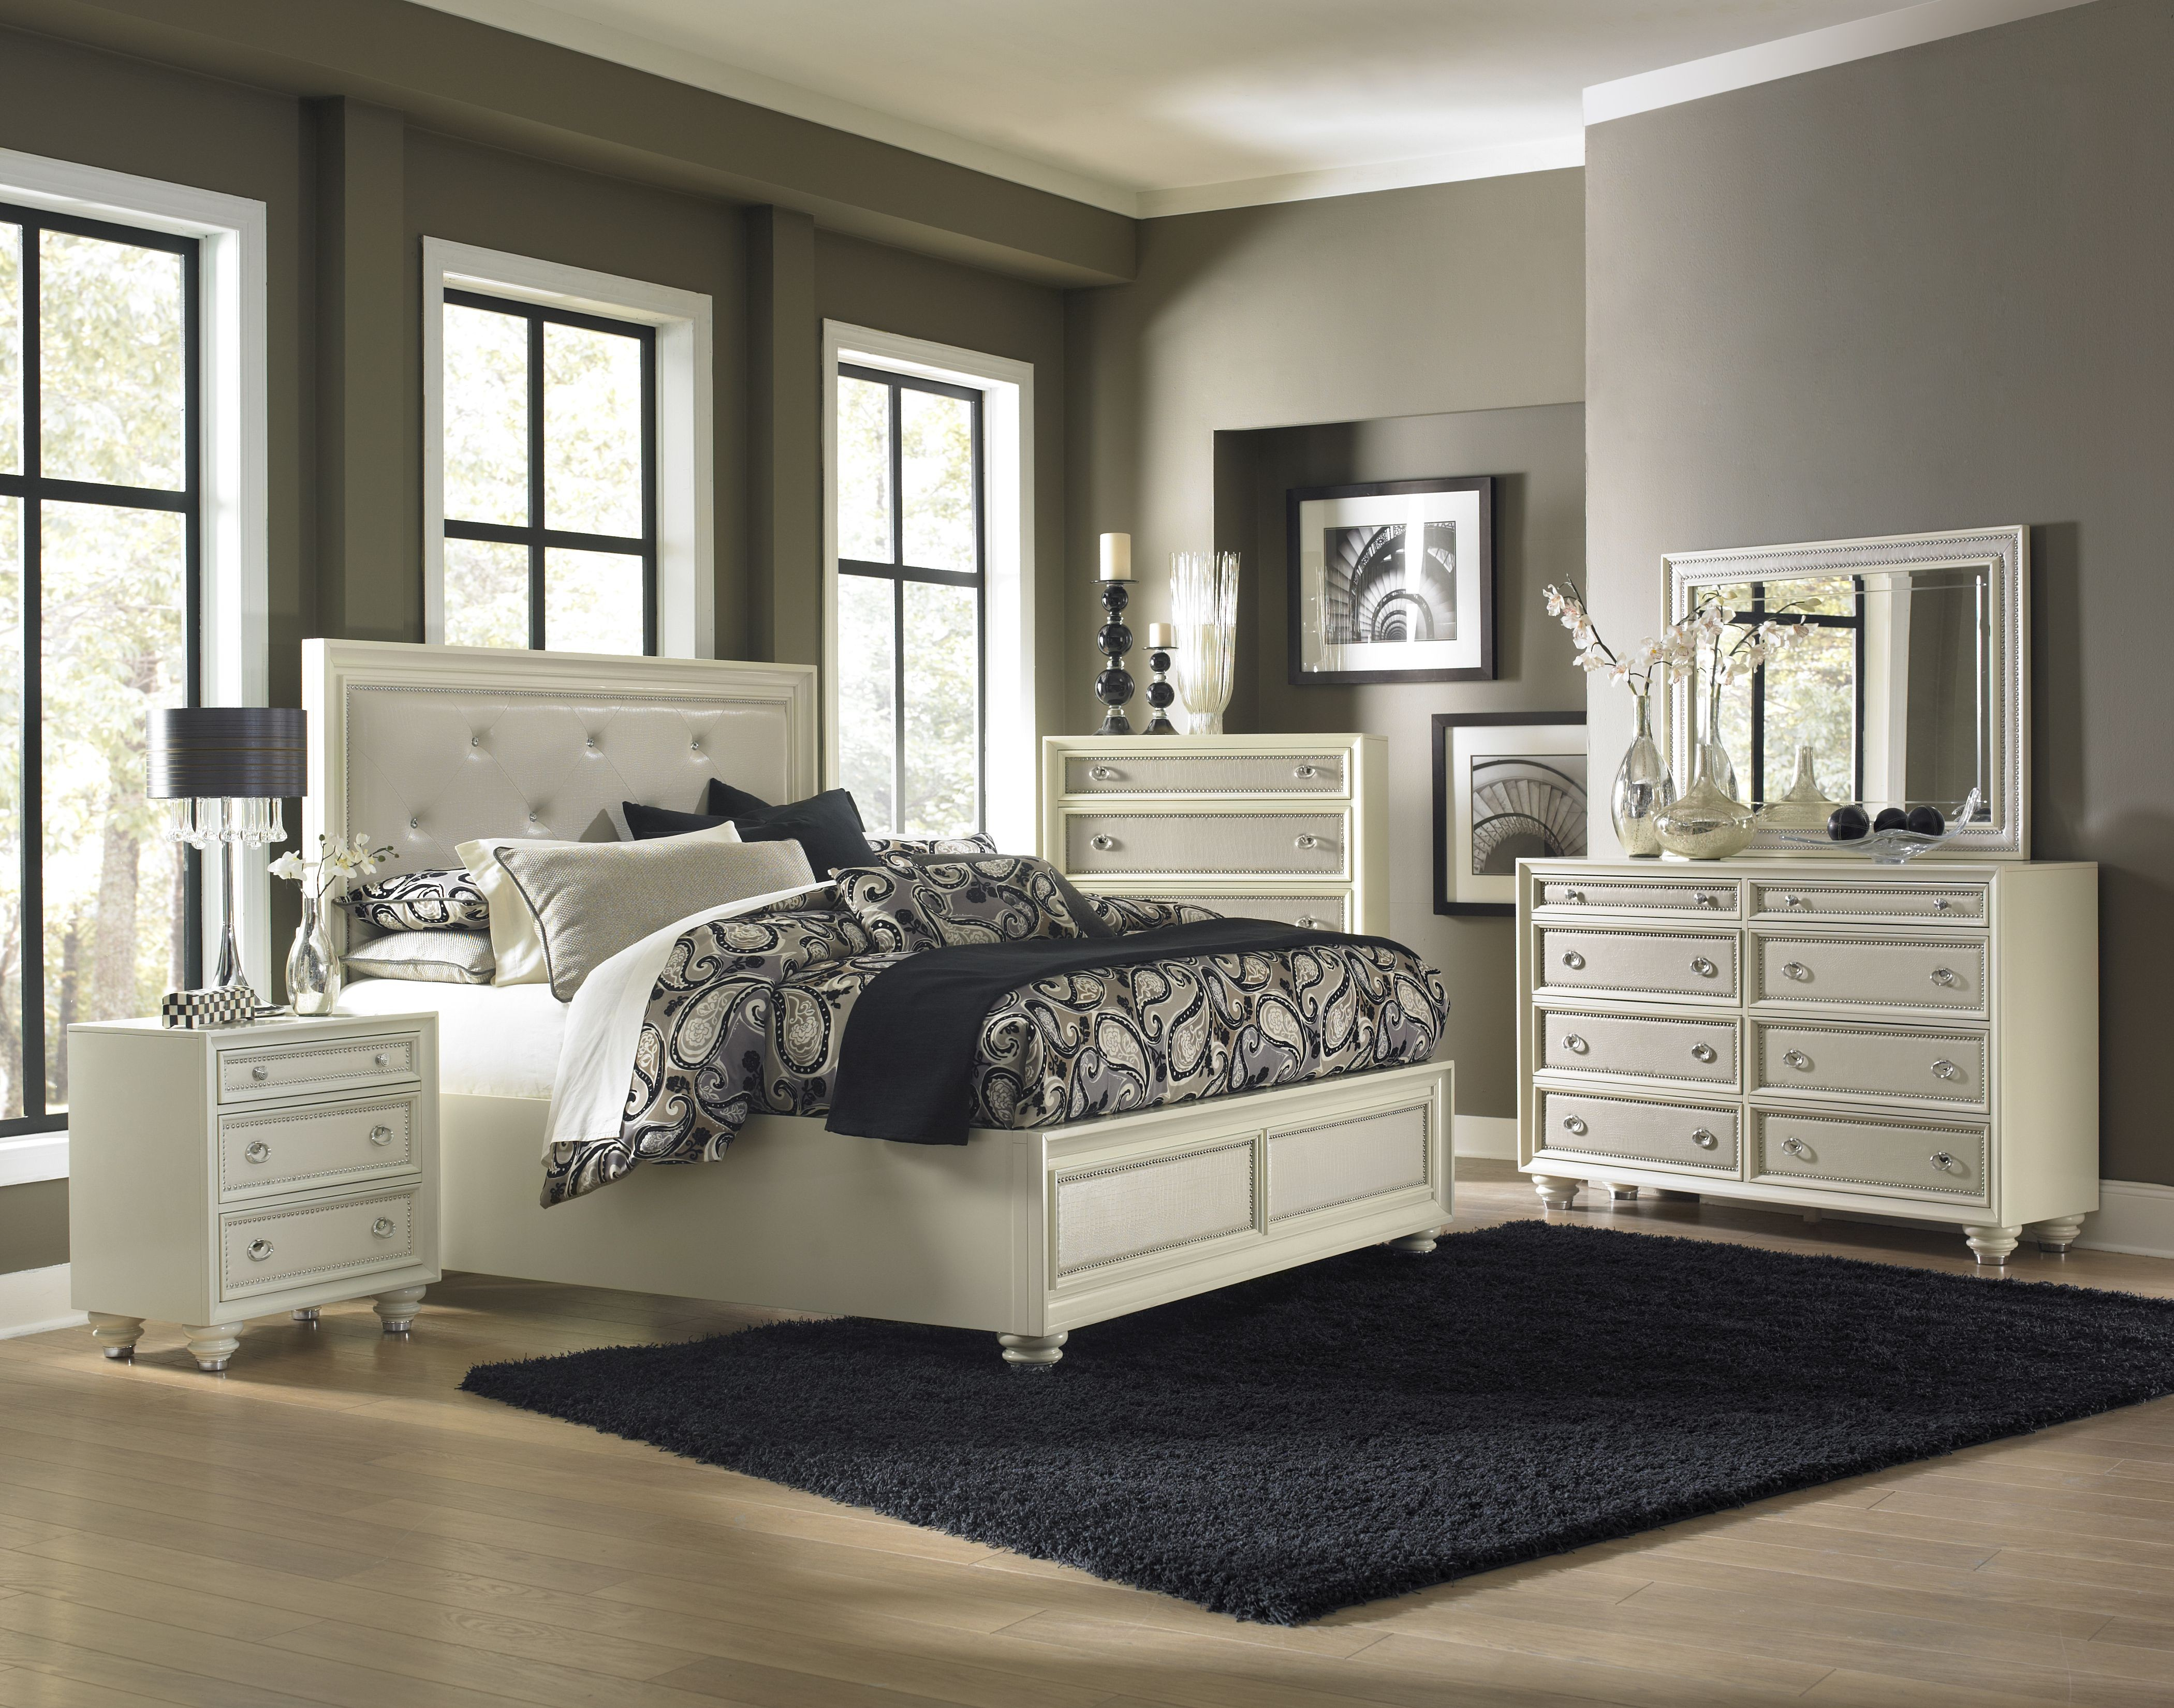 Magnussen Harrison Bedroom Furniture Diamond Island Bedroom Set From Magnussen Home B2344 50h 50f 50r